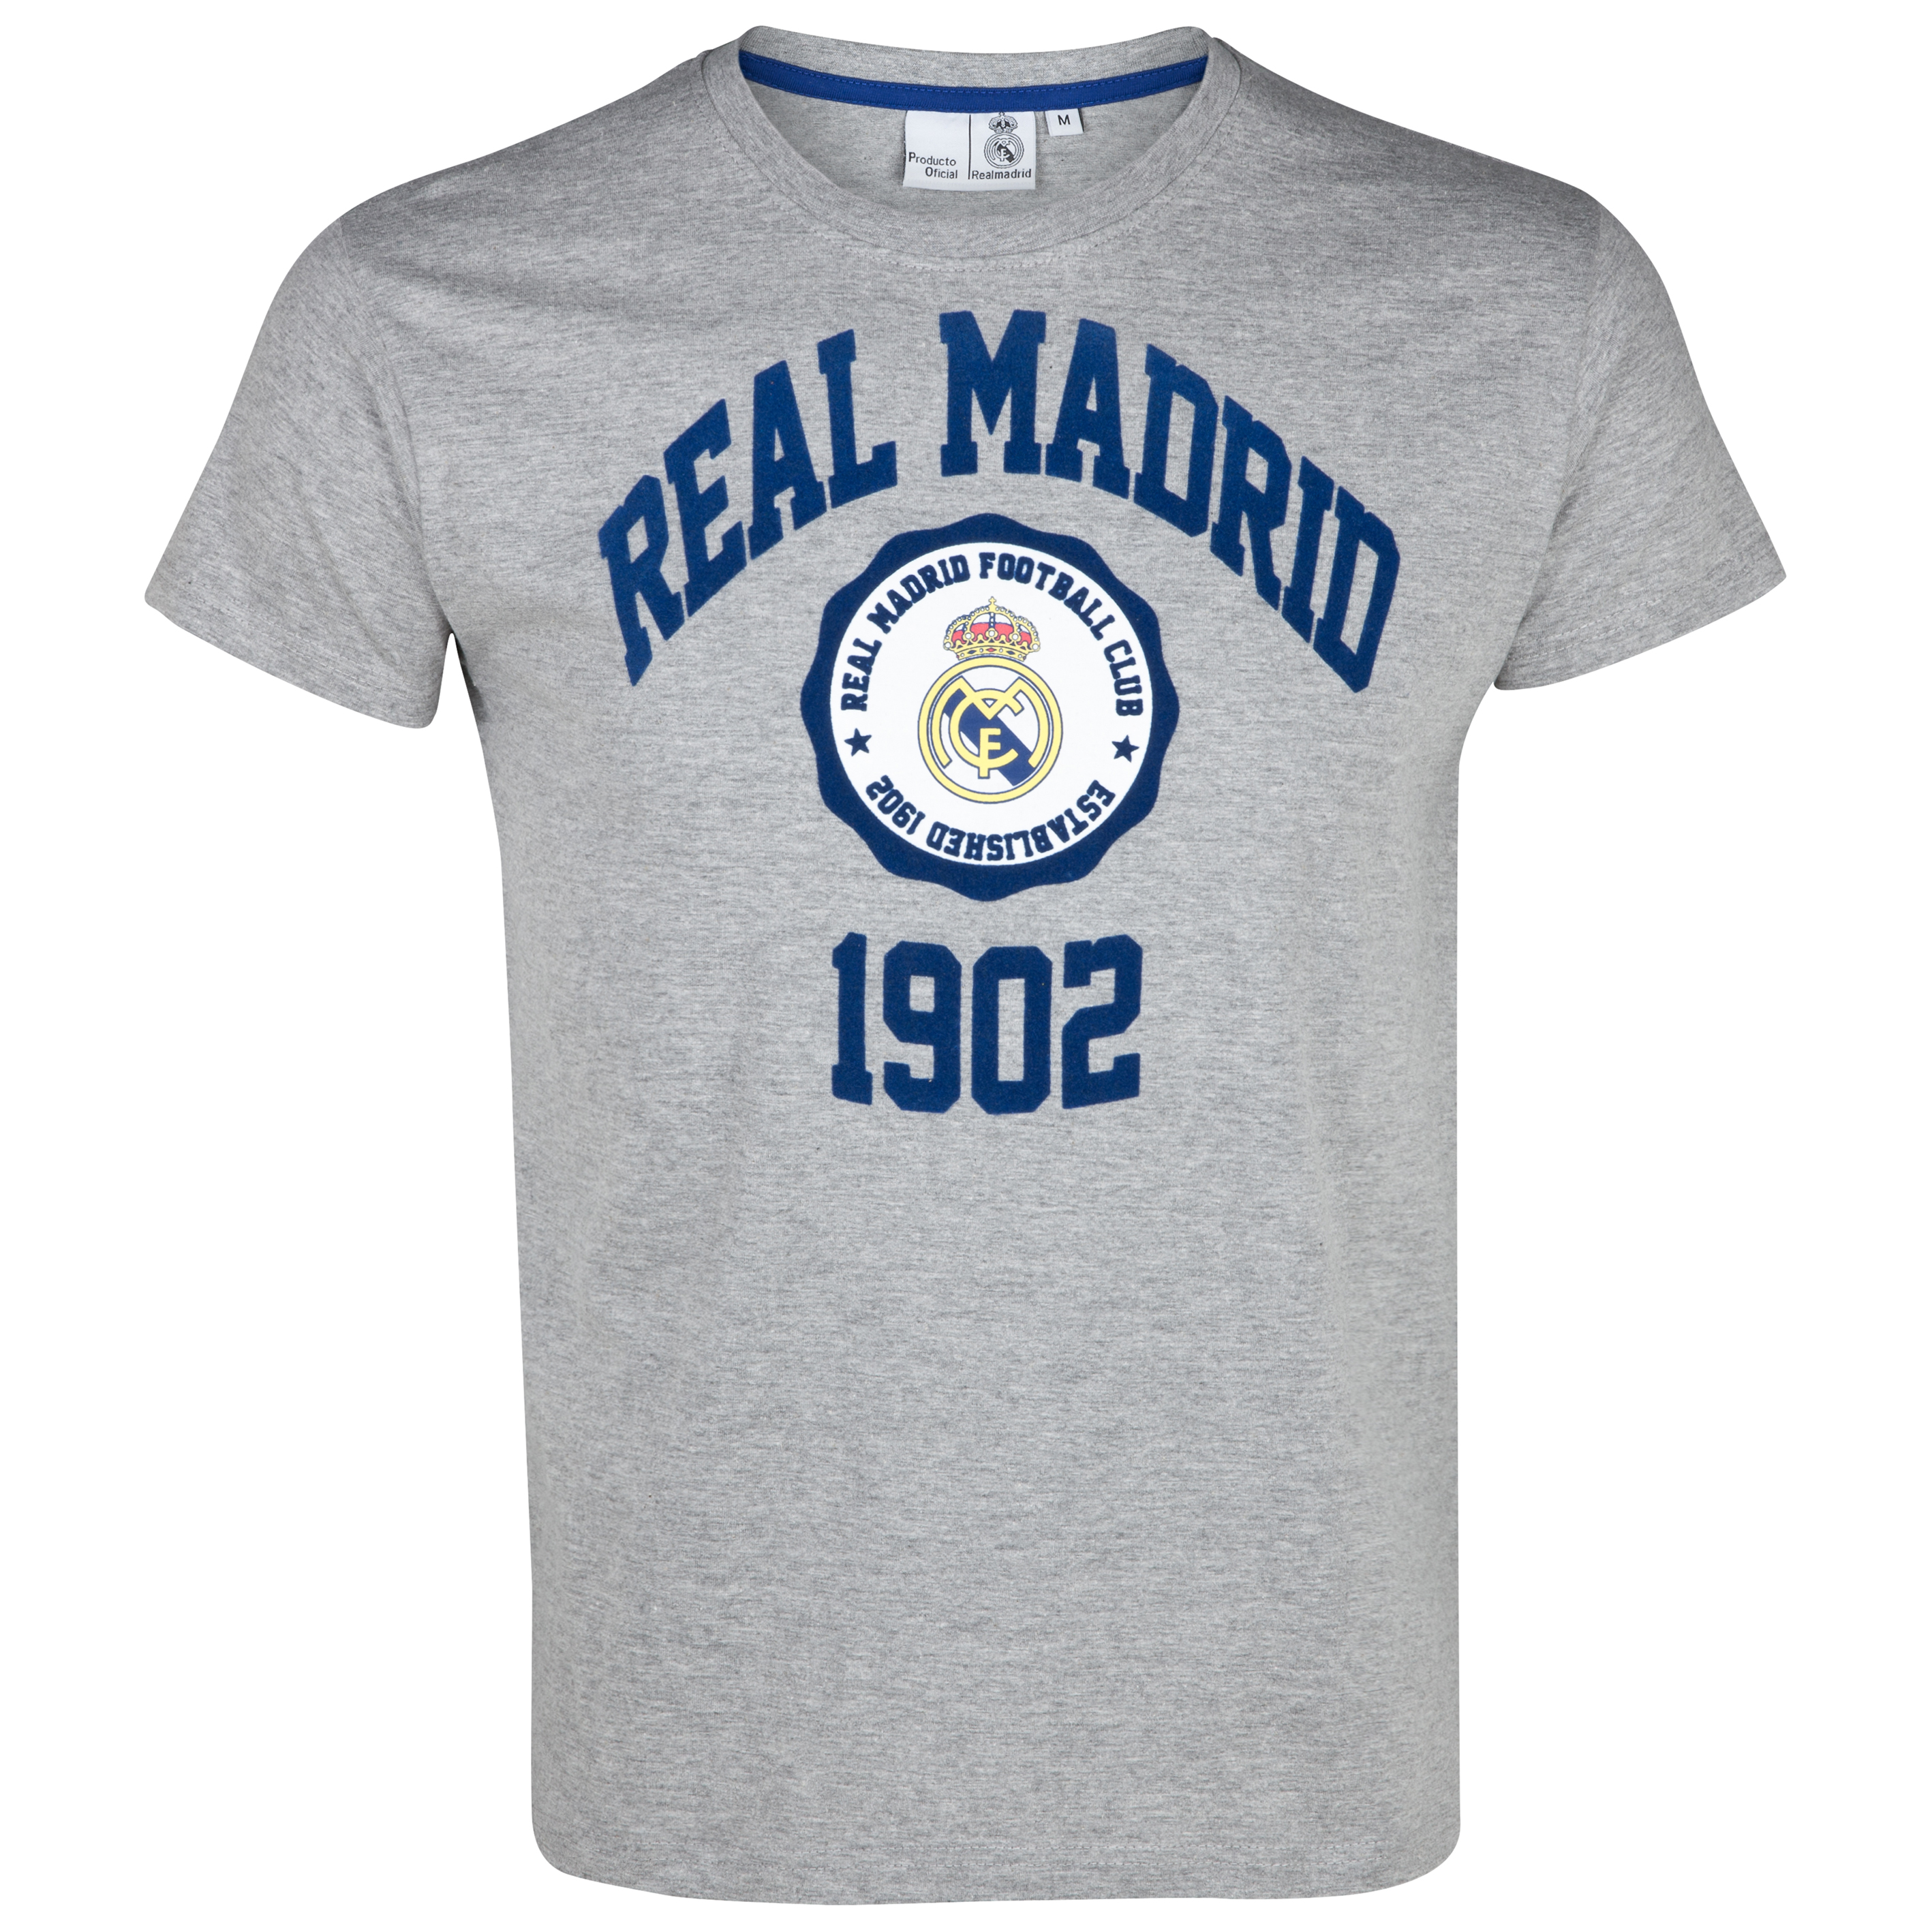 Camiseta Desde 1902 Real Madrid - Gris